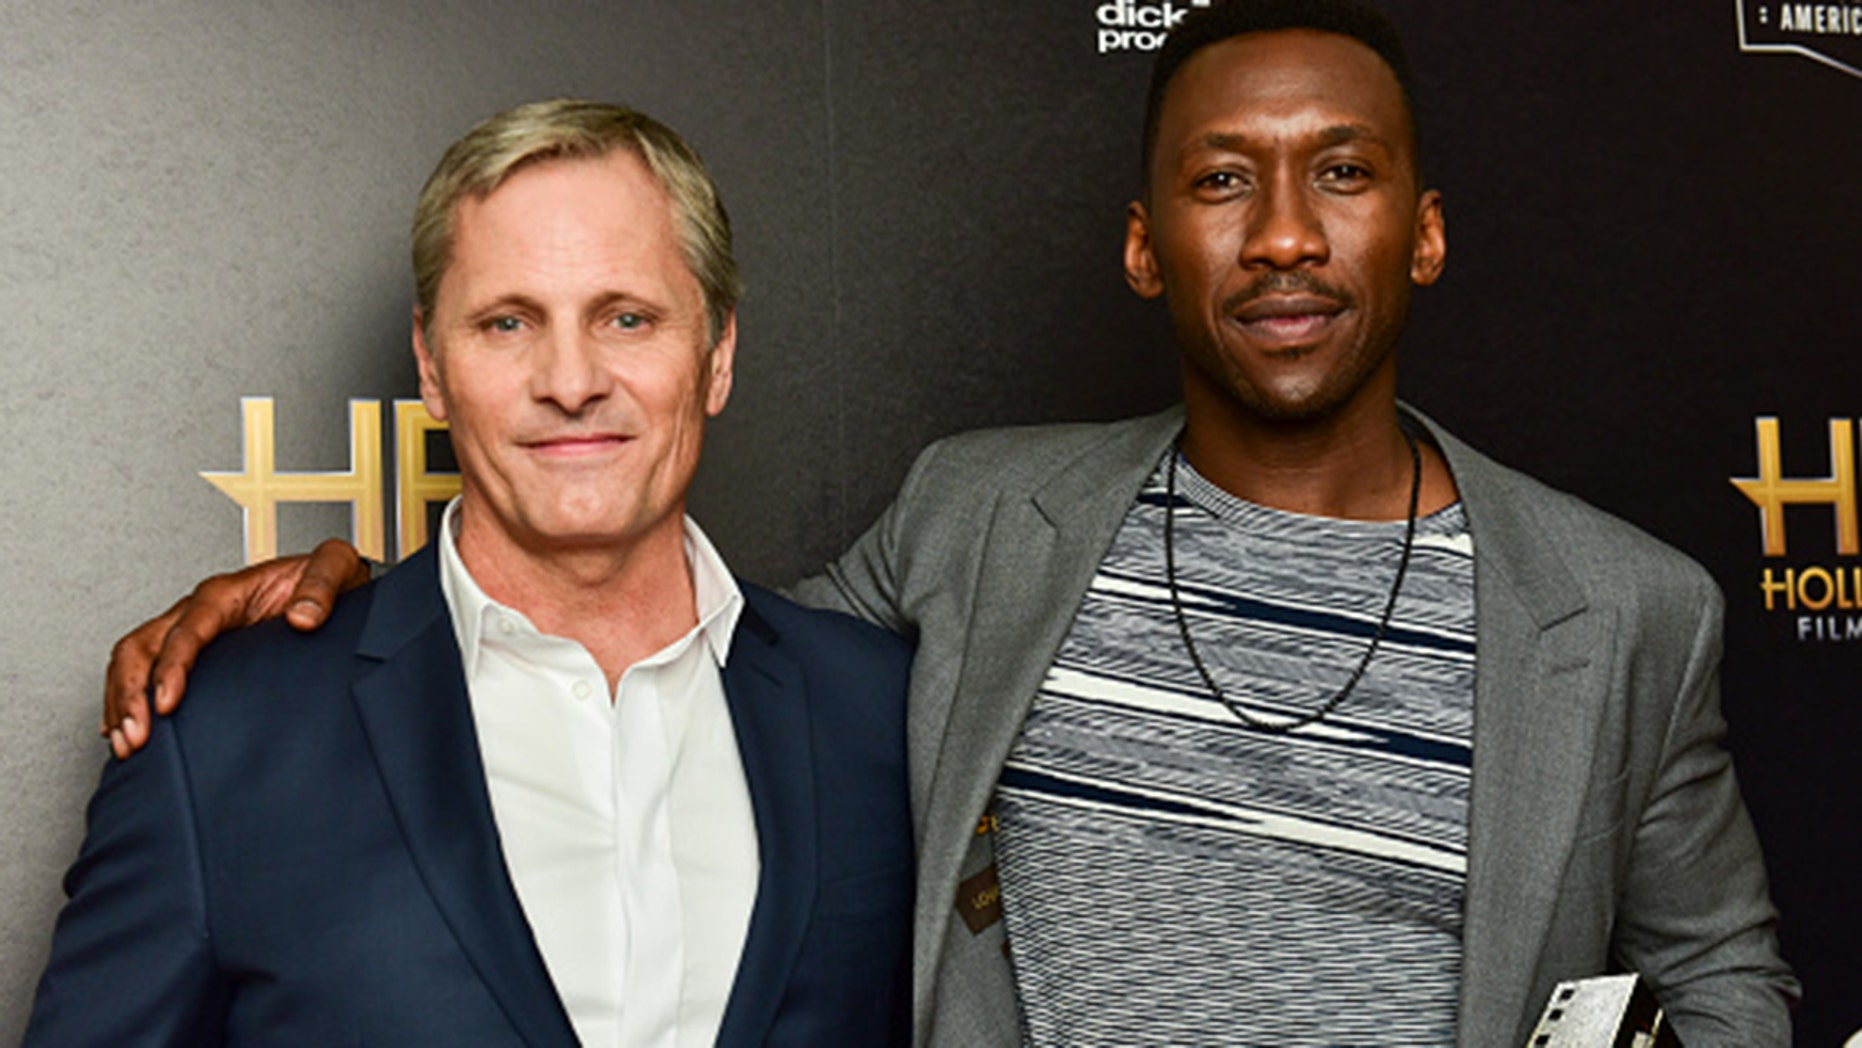 Mahershala Ali says he 'can accept'his co-star Viggo Mortensen's reparation for his use of a N-word. (Photo by Rodin Eckenroth/Getty Images)